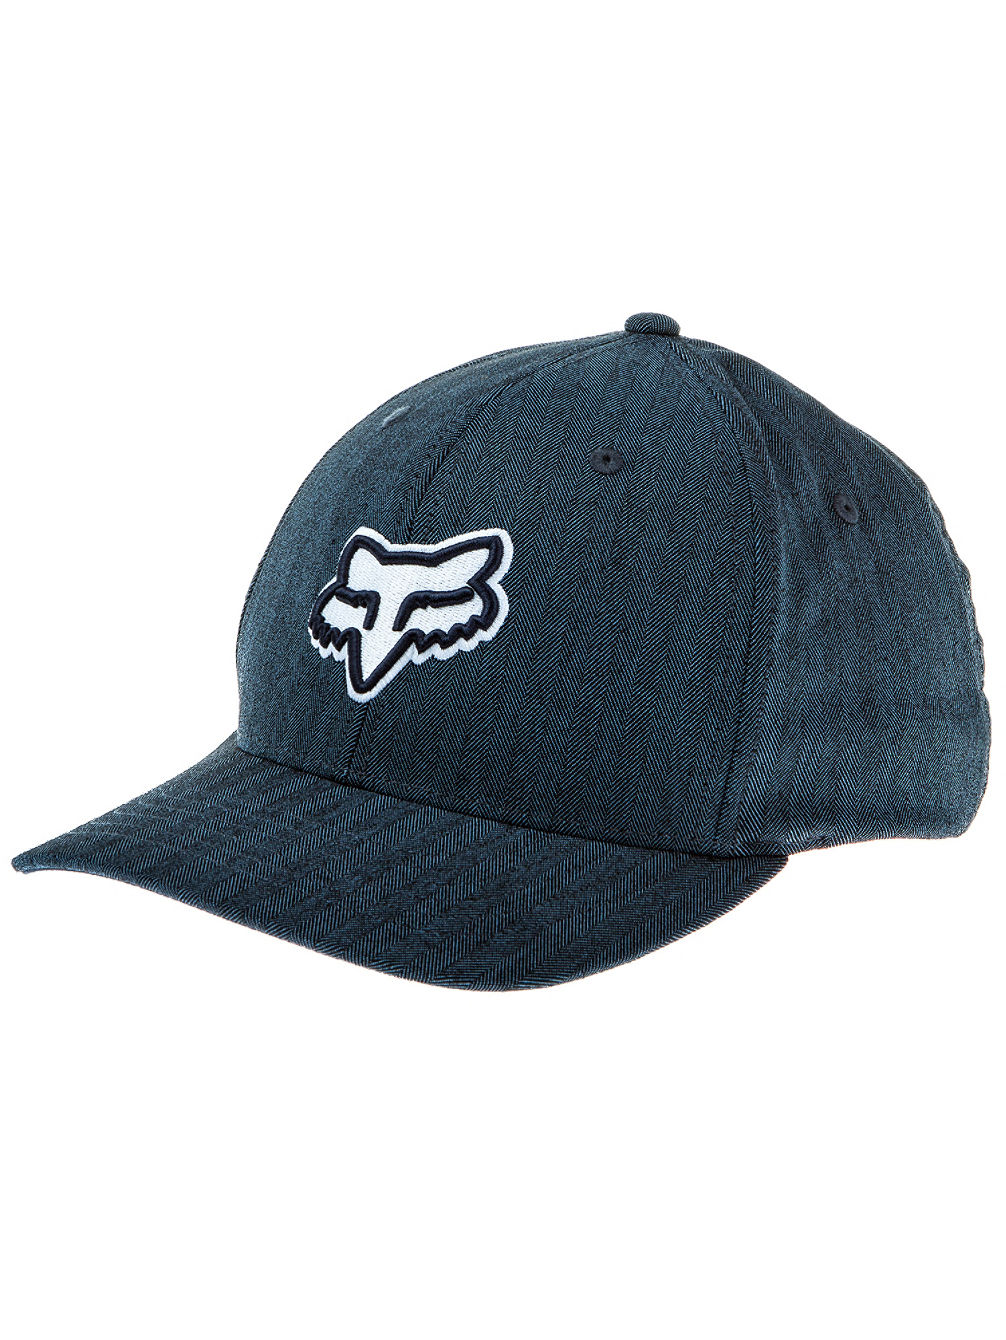 Transfer Flexfit Cap